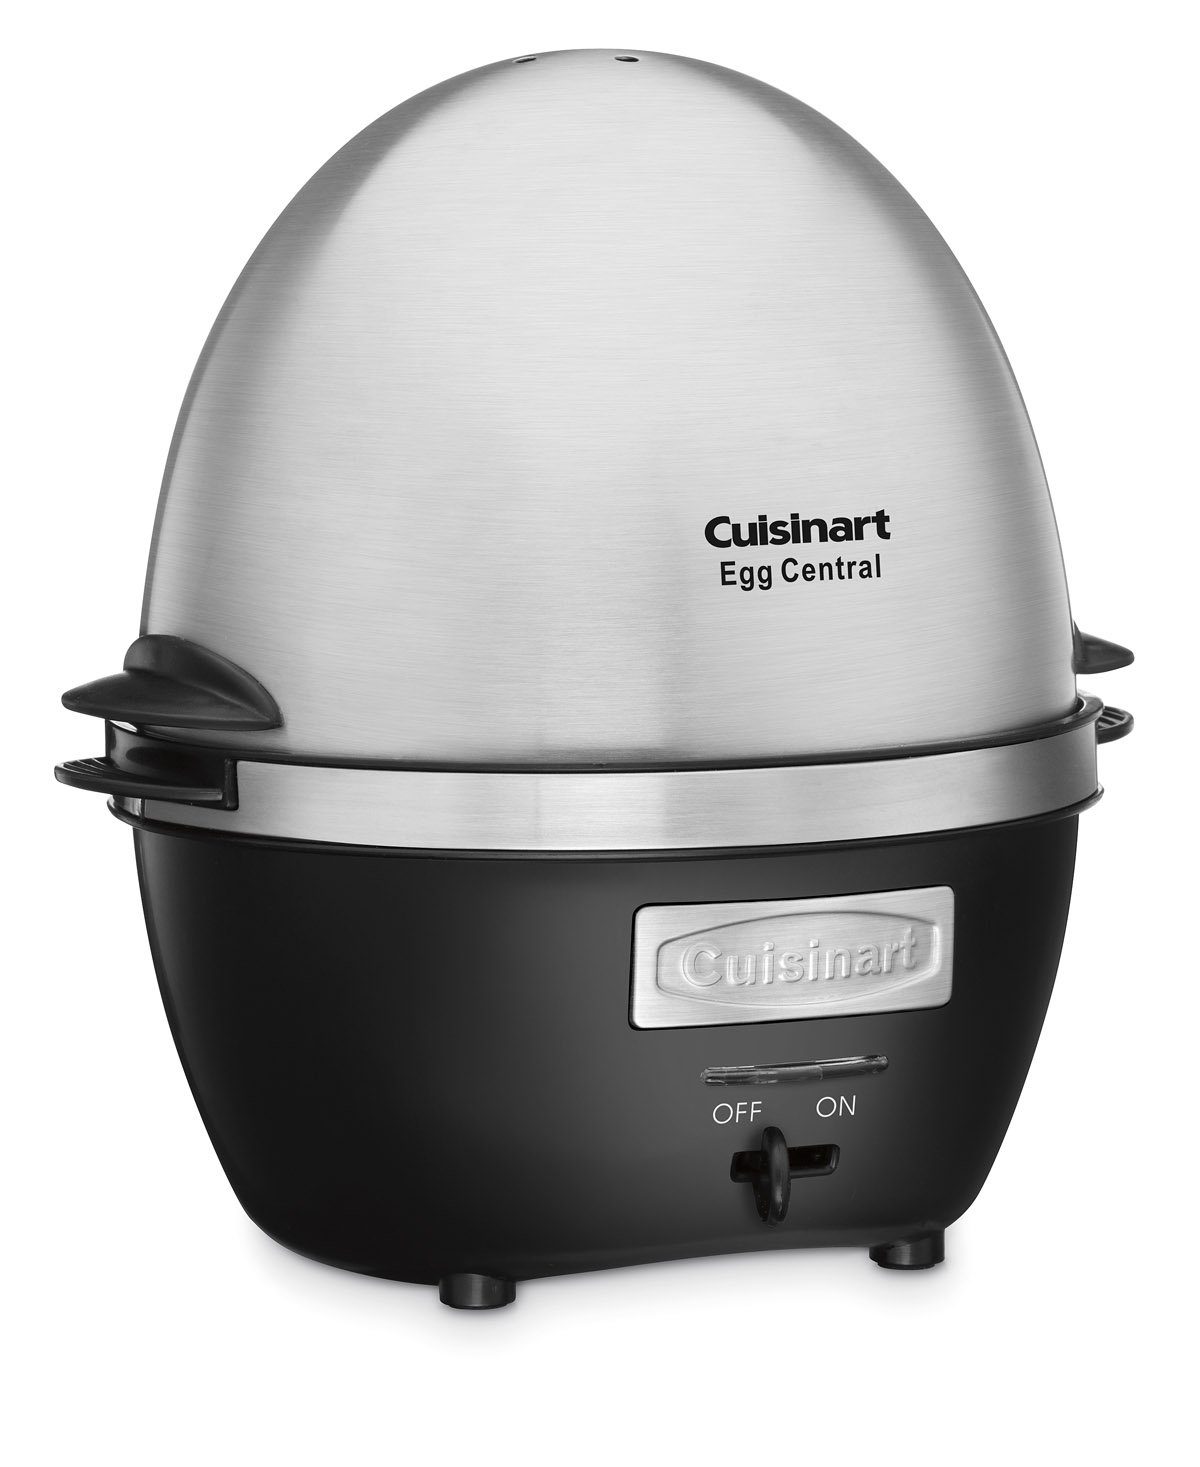 Amazon Com Cuisinart CecEgg Central Egg Cooker Electric Egg Cookers Kitchen Dining